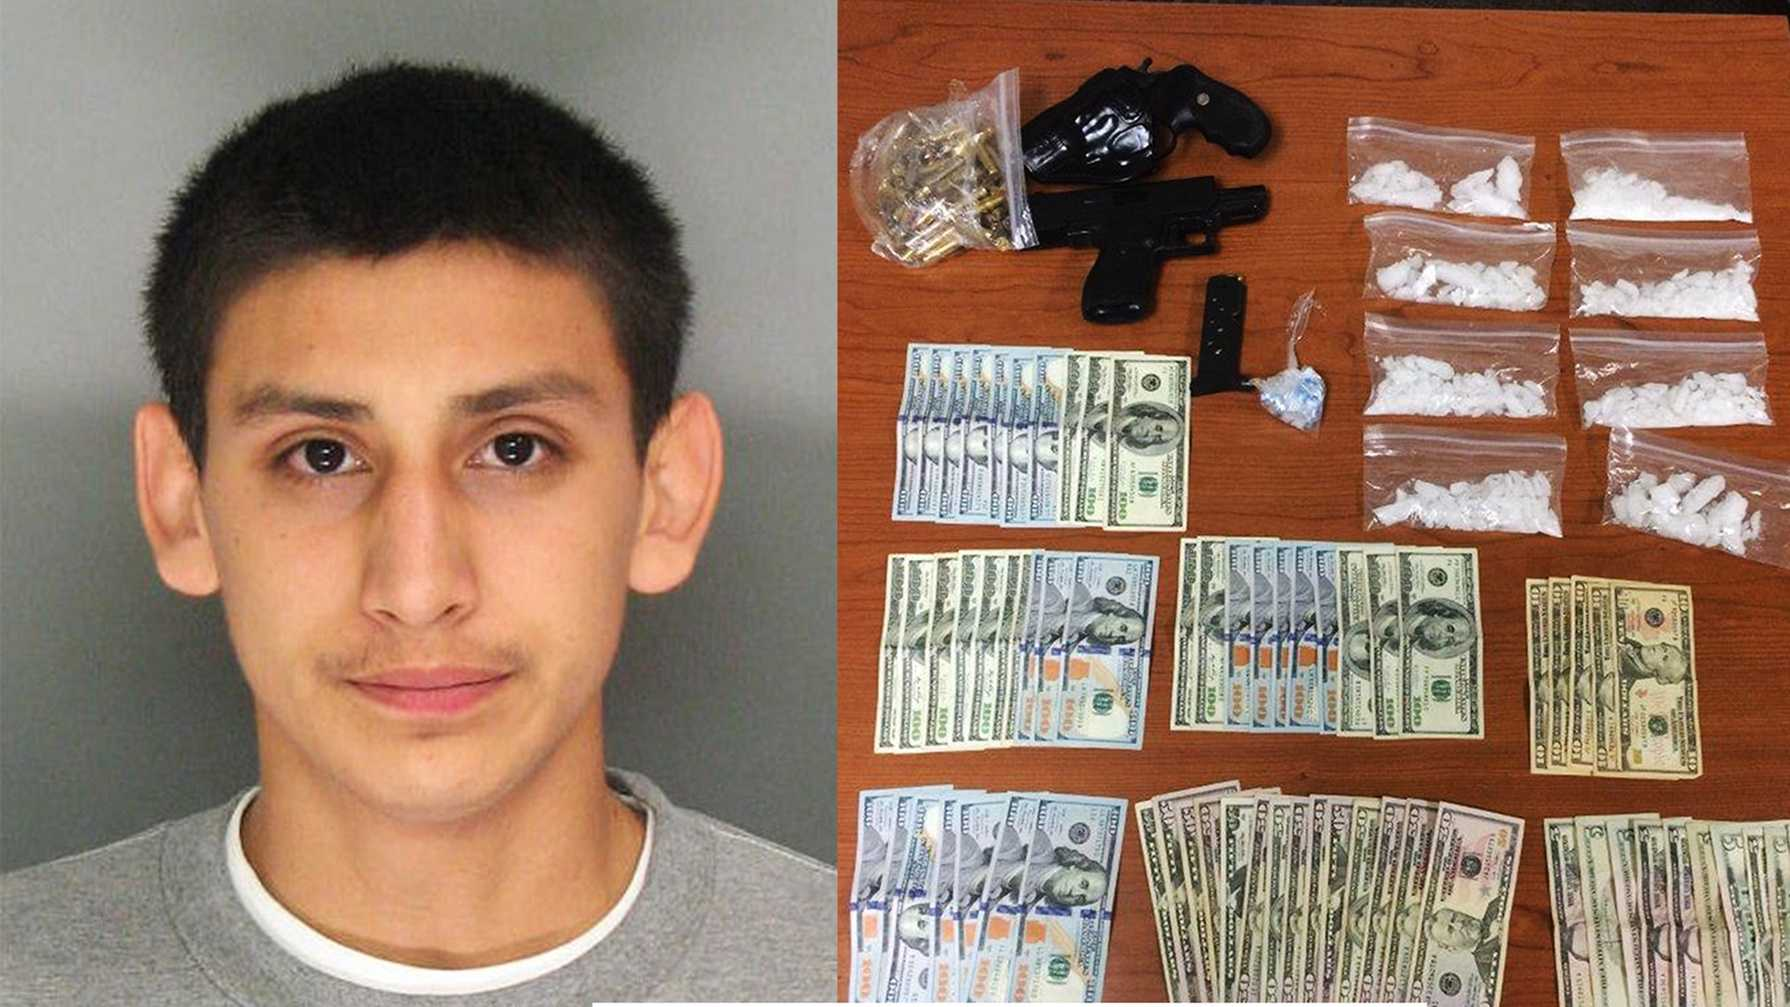 Guillermo Campos, left, was arrested in his criminal justice class at Cabrillo College. Deputies said they seized cash, drugs, and guns, right.